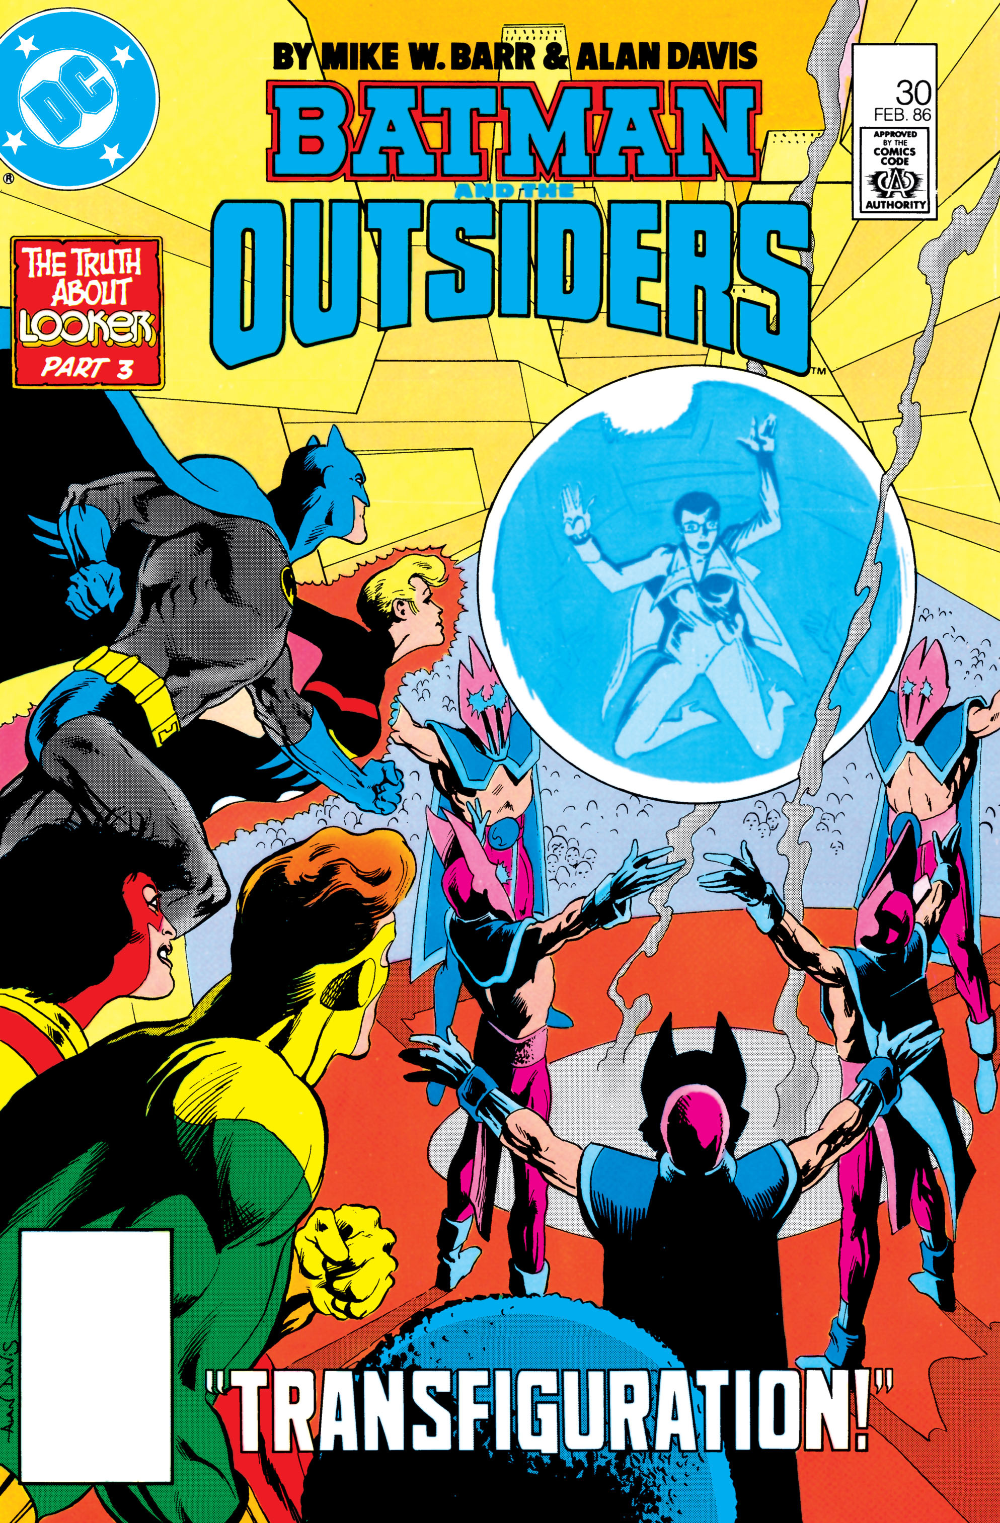 Batman And The Outsiders 1983 Issue 30 Read Batman And The Outsiders 1983 Issue 30 Comic Online In High Quality In 2020 Comics Comic Books Comics Online